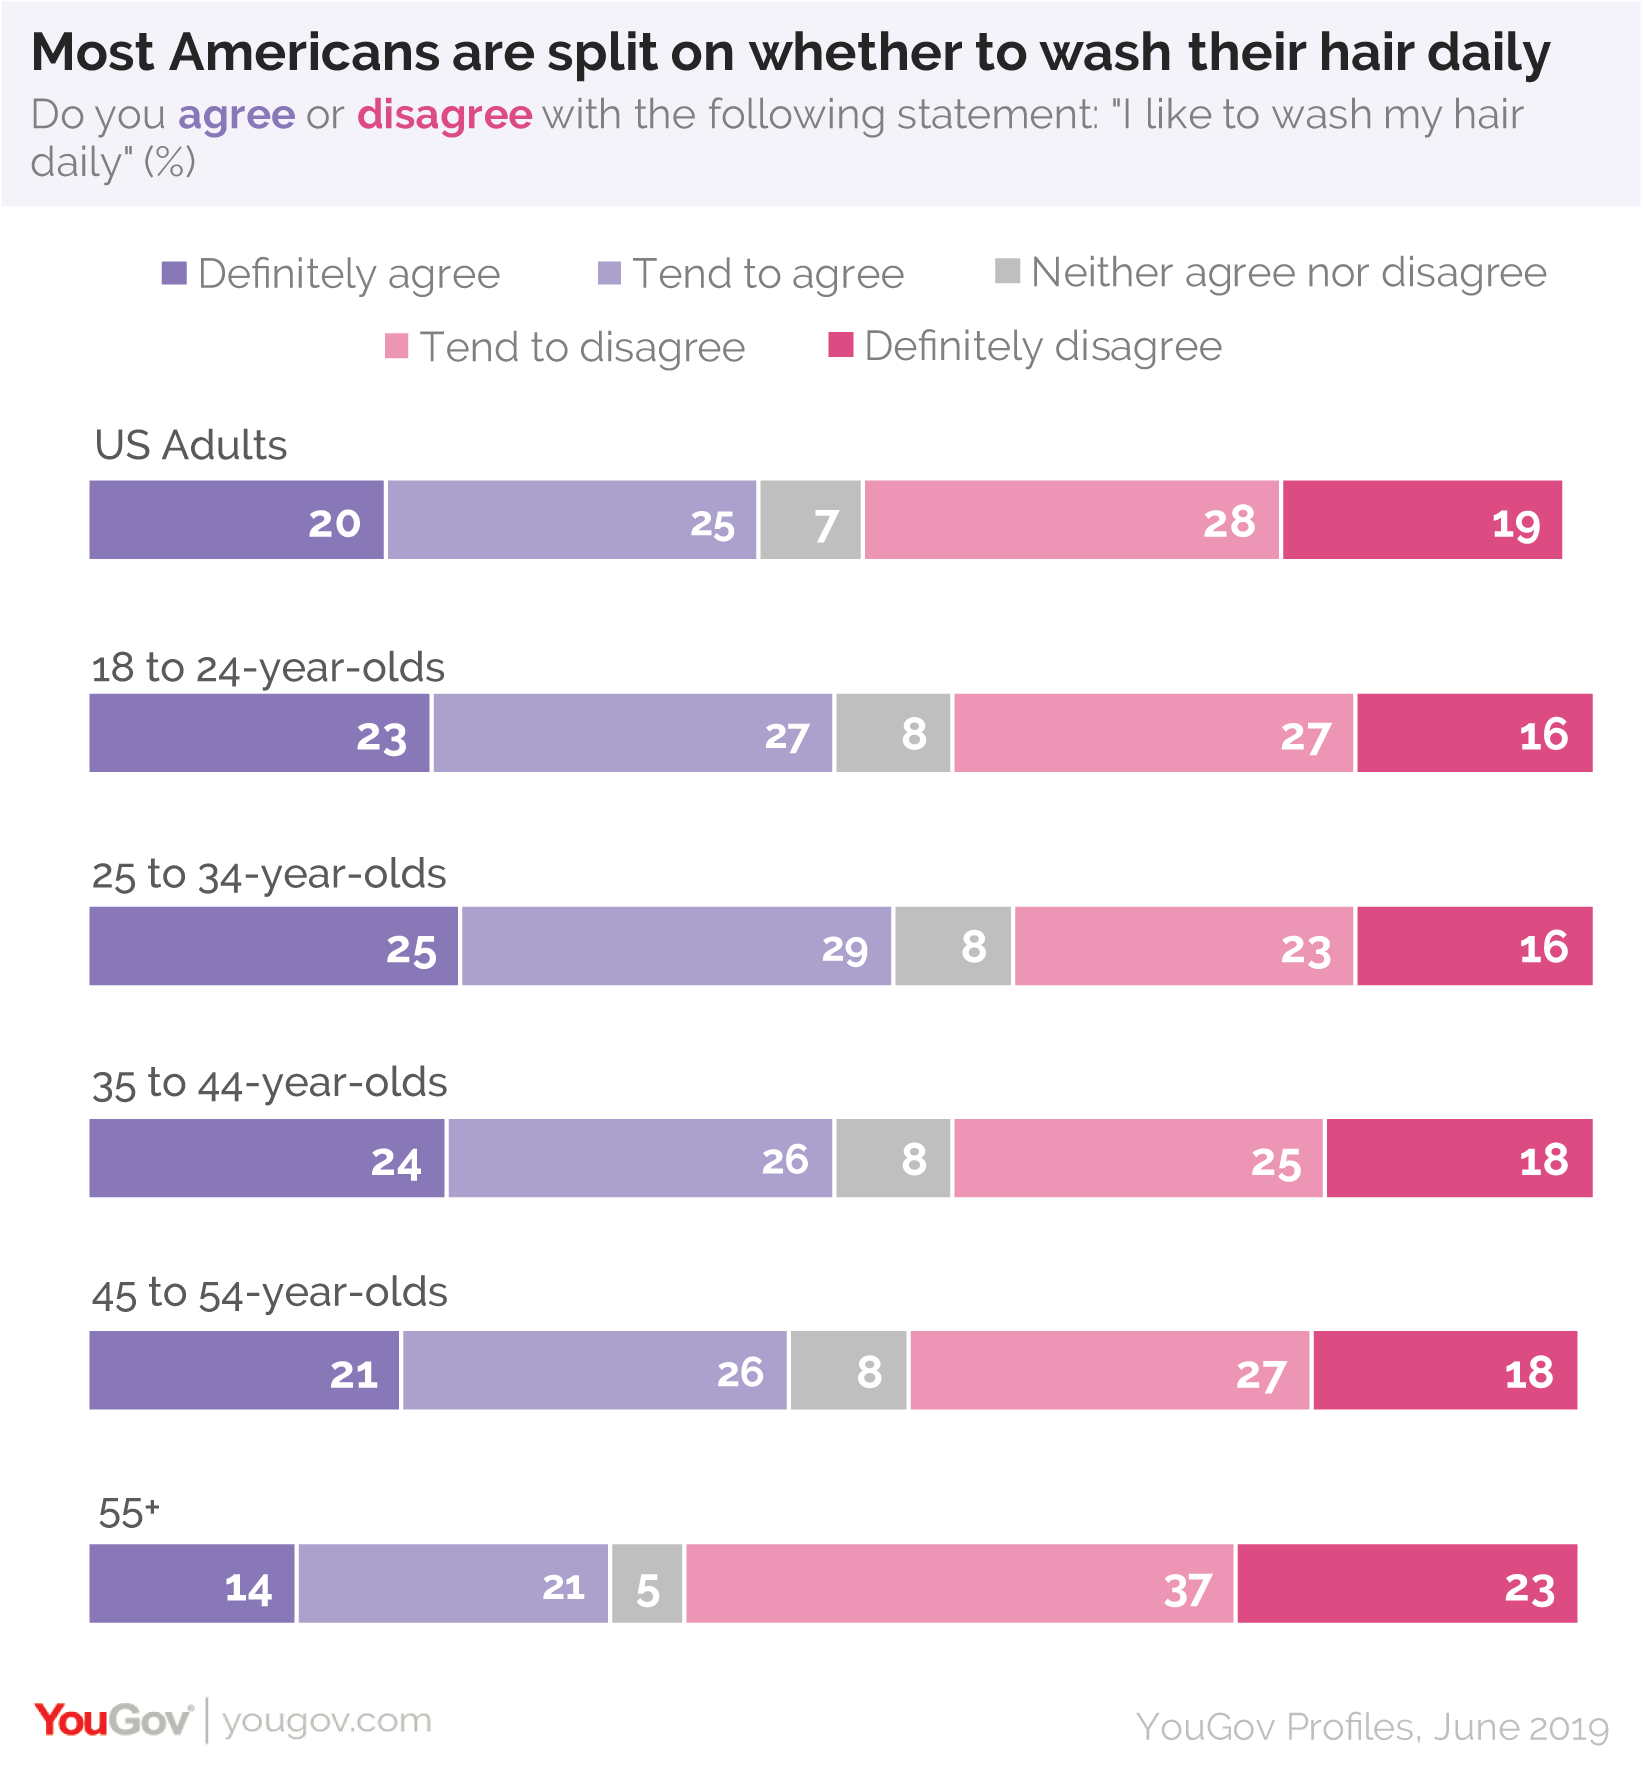 Most Americans are split on whether to wash their hair daily